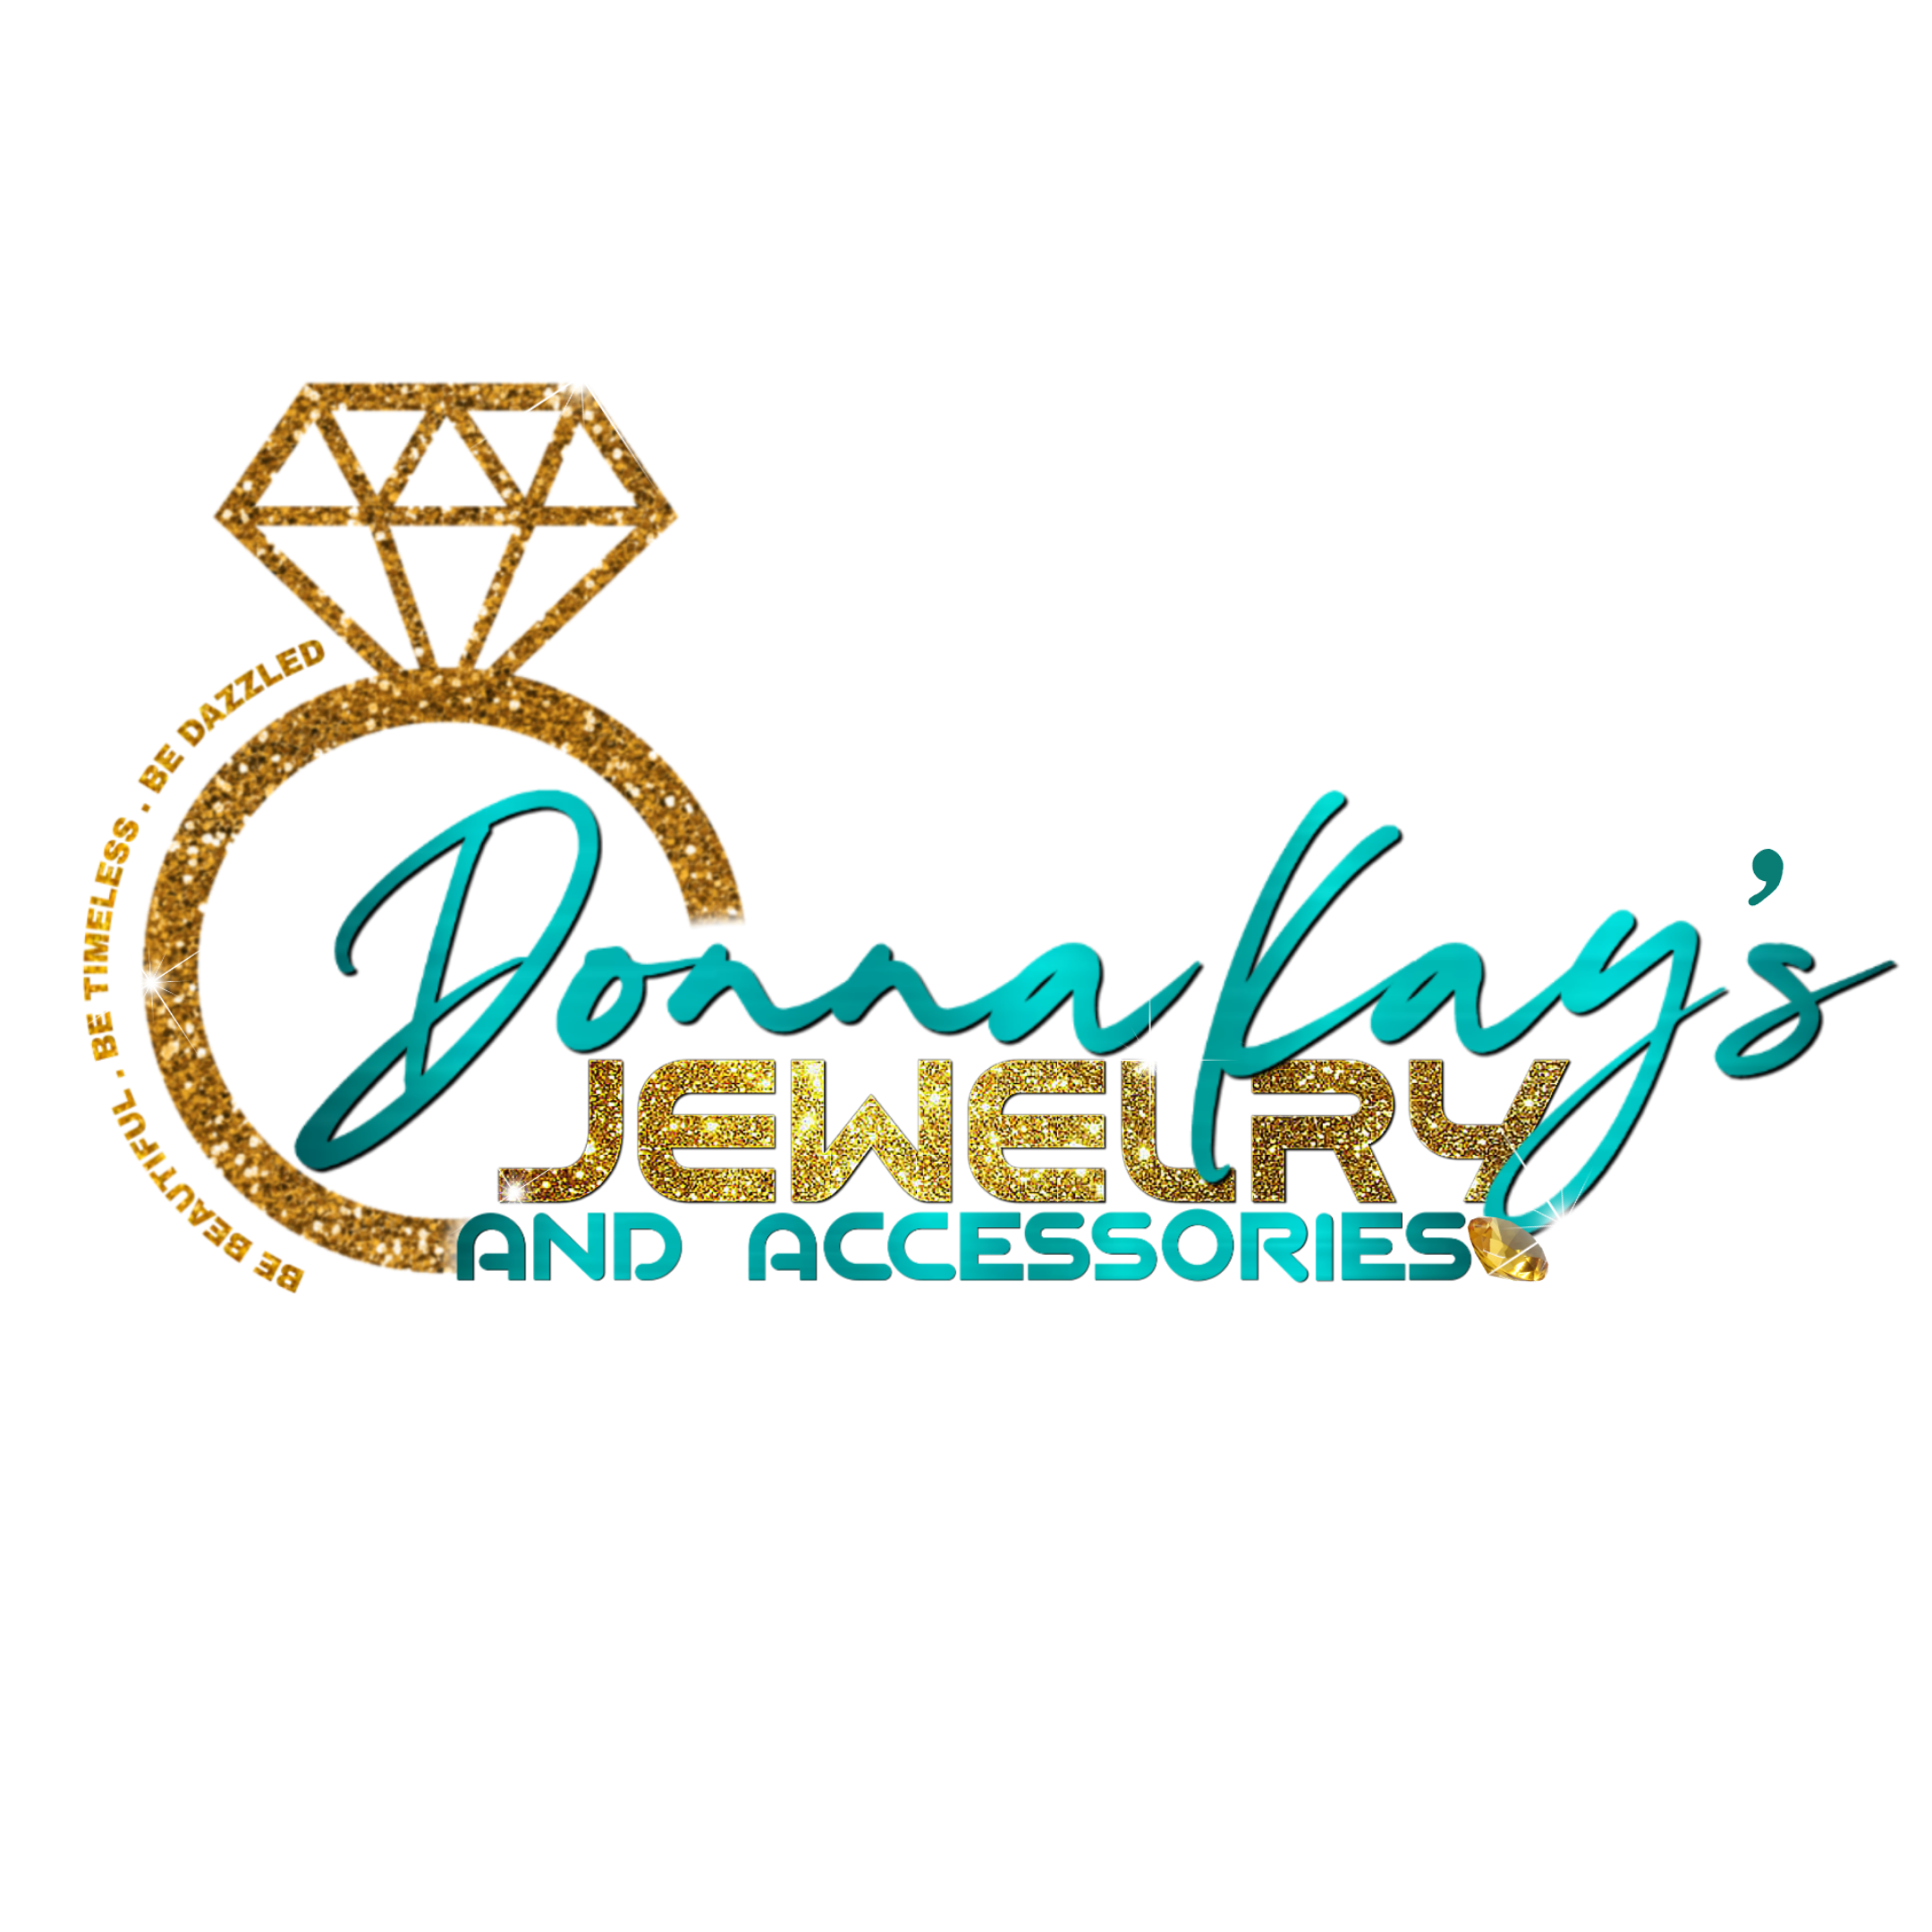 Donna Kay's Jewelry and Accessories